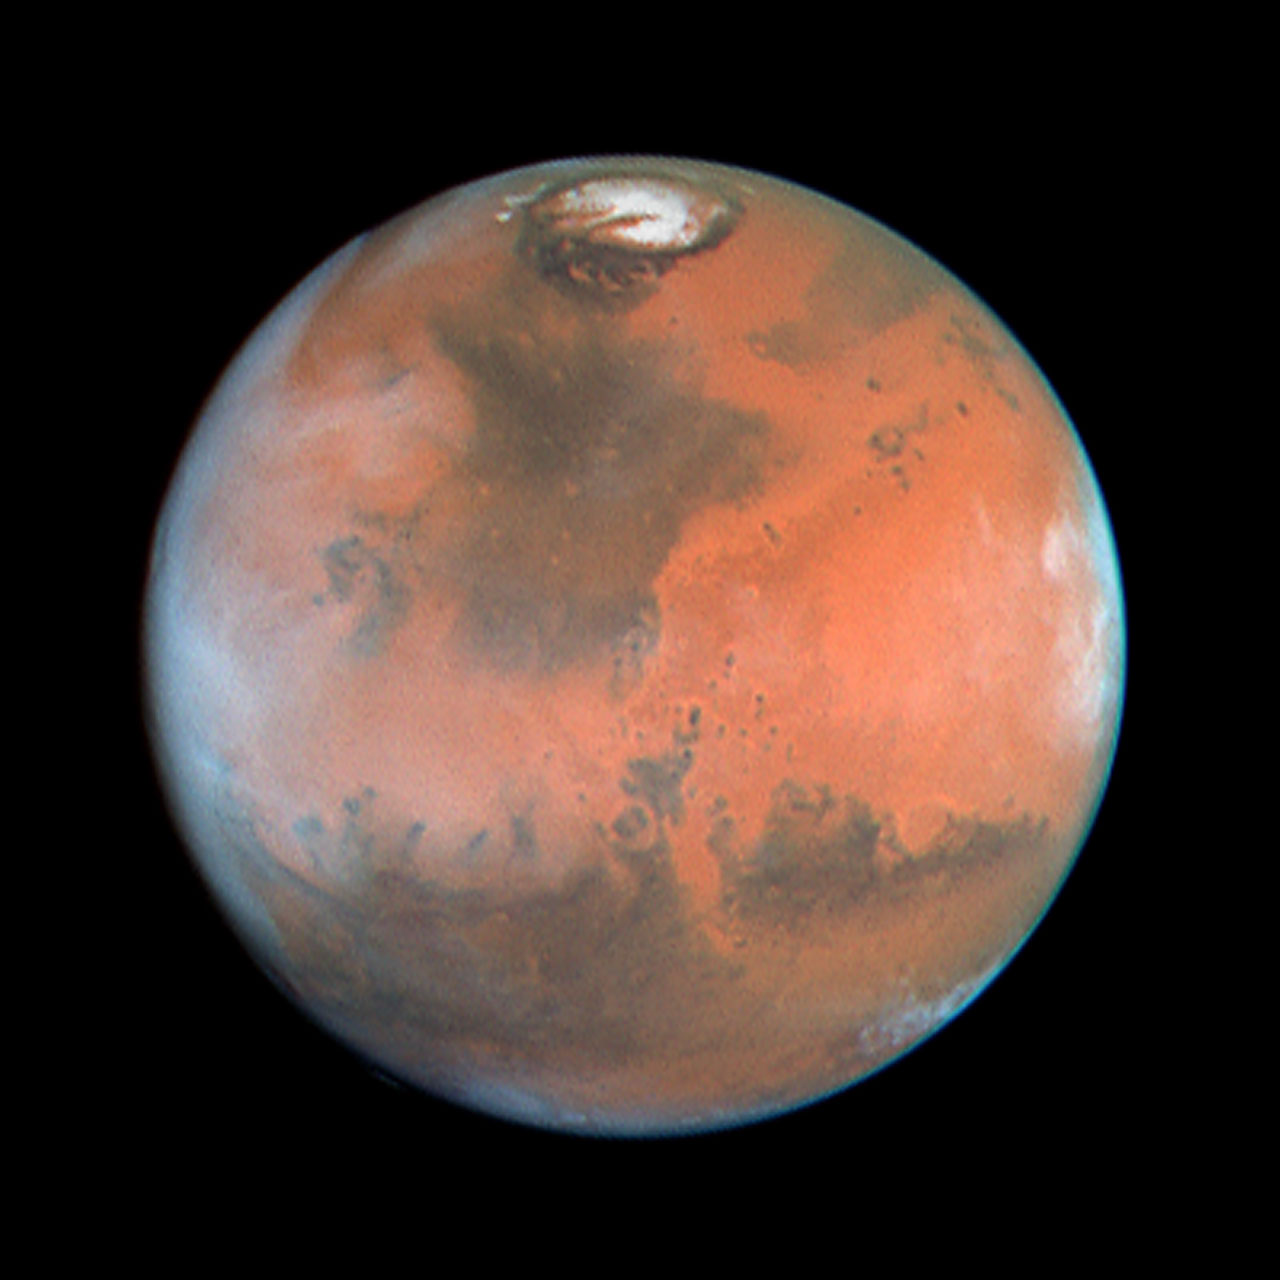 hubble images of mars - photo #4